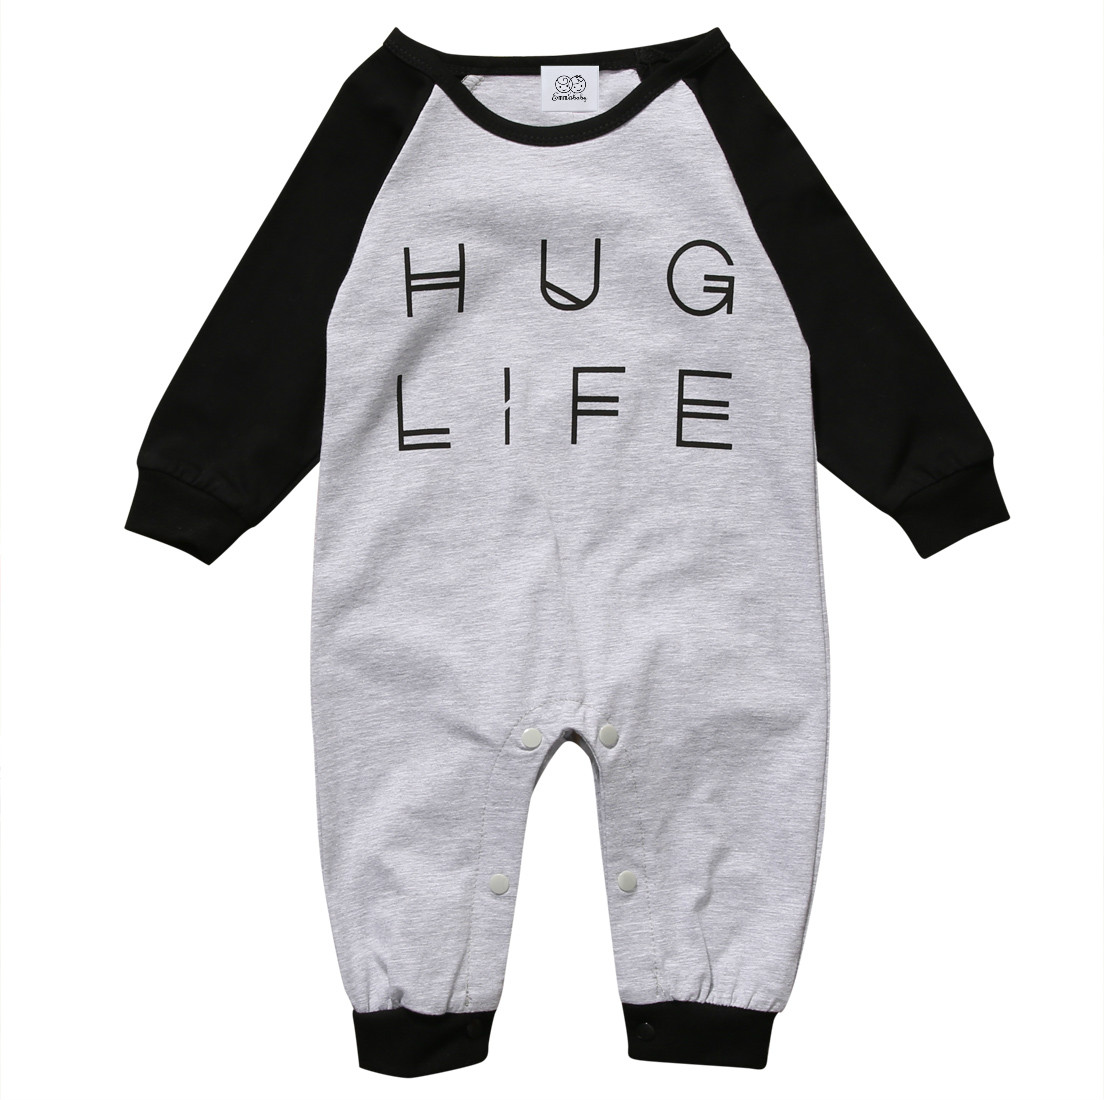 2017 new arrival Spring autumn Baby boy clothes Newborn Infant Clothing Cotton long sleeve Baby Romper Toddler Jumpsuits 0-2Year 2017 baby girl summer romper newborn baby romper suits infant boy cotton toddler striped clothes baby boy short sleeve jumpsuits